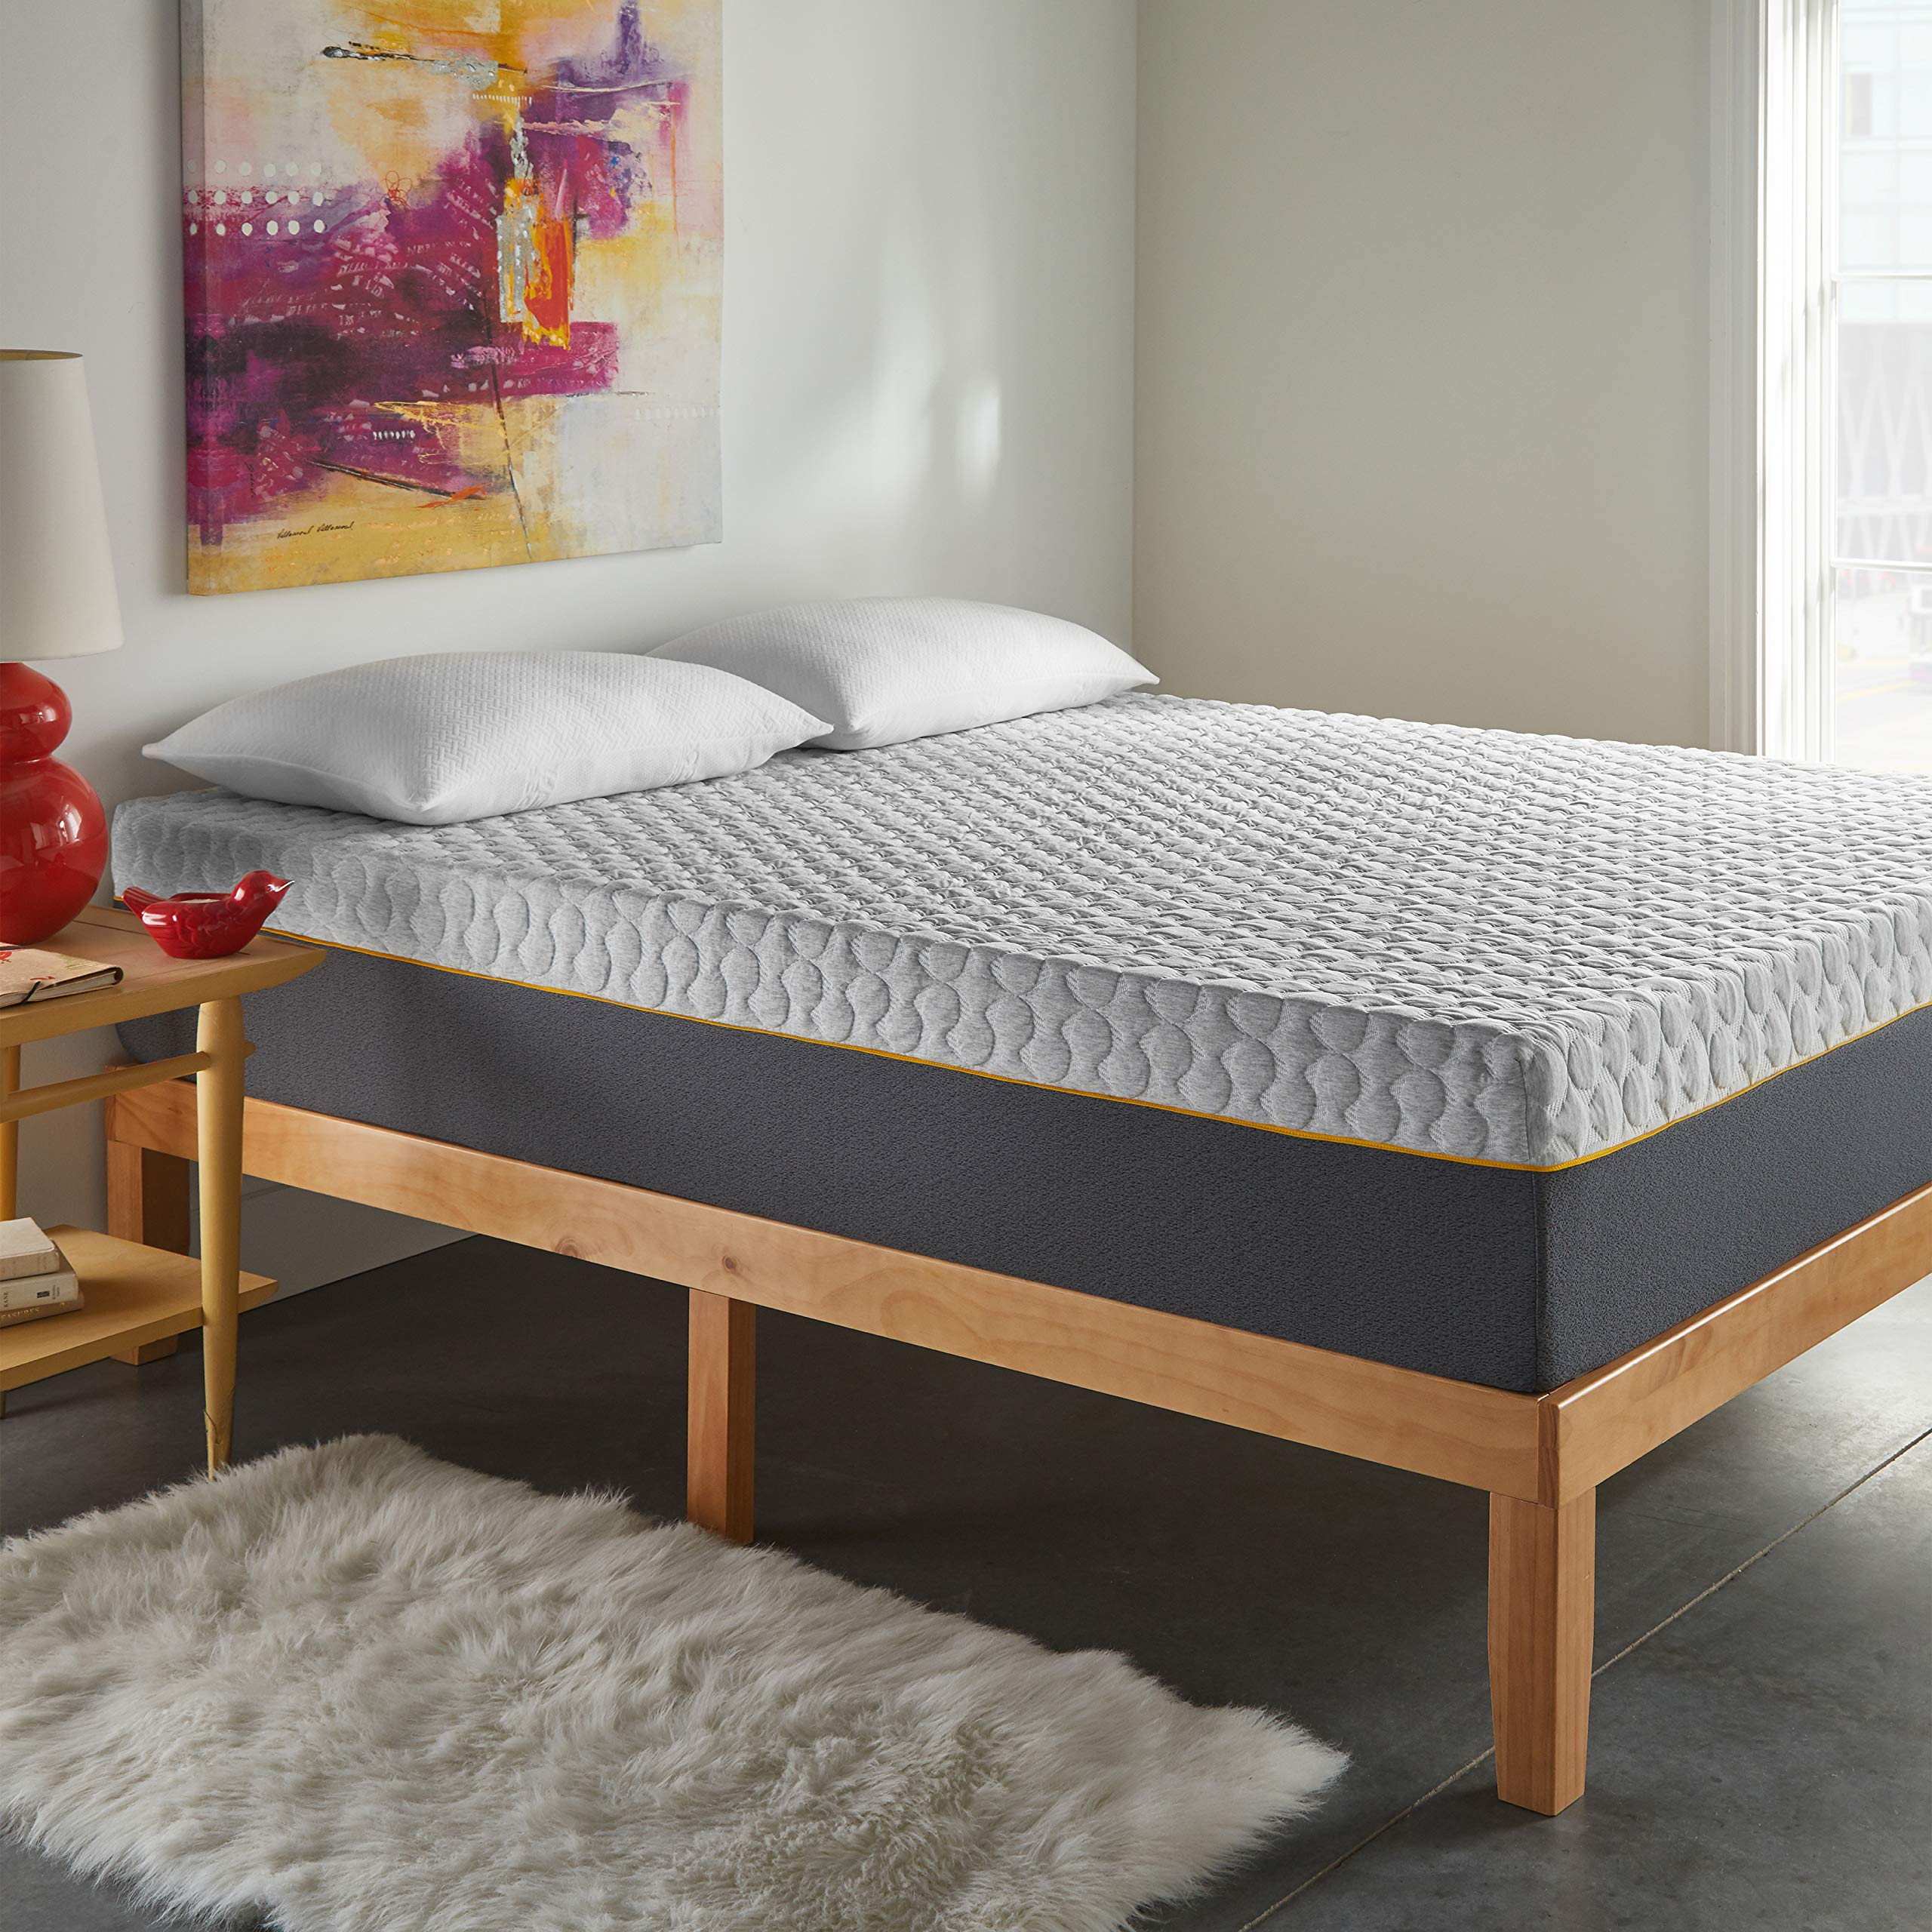 Early Bird 12-inch Hybrid Memory Foam and Spring Mattress, Medium Comfort, Bed in Box, CertiPUR-US Certified Foam, No Harmful Chemicals, Handcrafted in The USA, 10 Year Warranty, Queen by EARLY BIRD